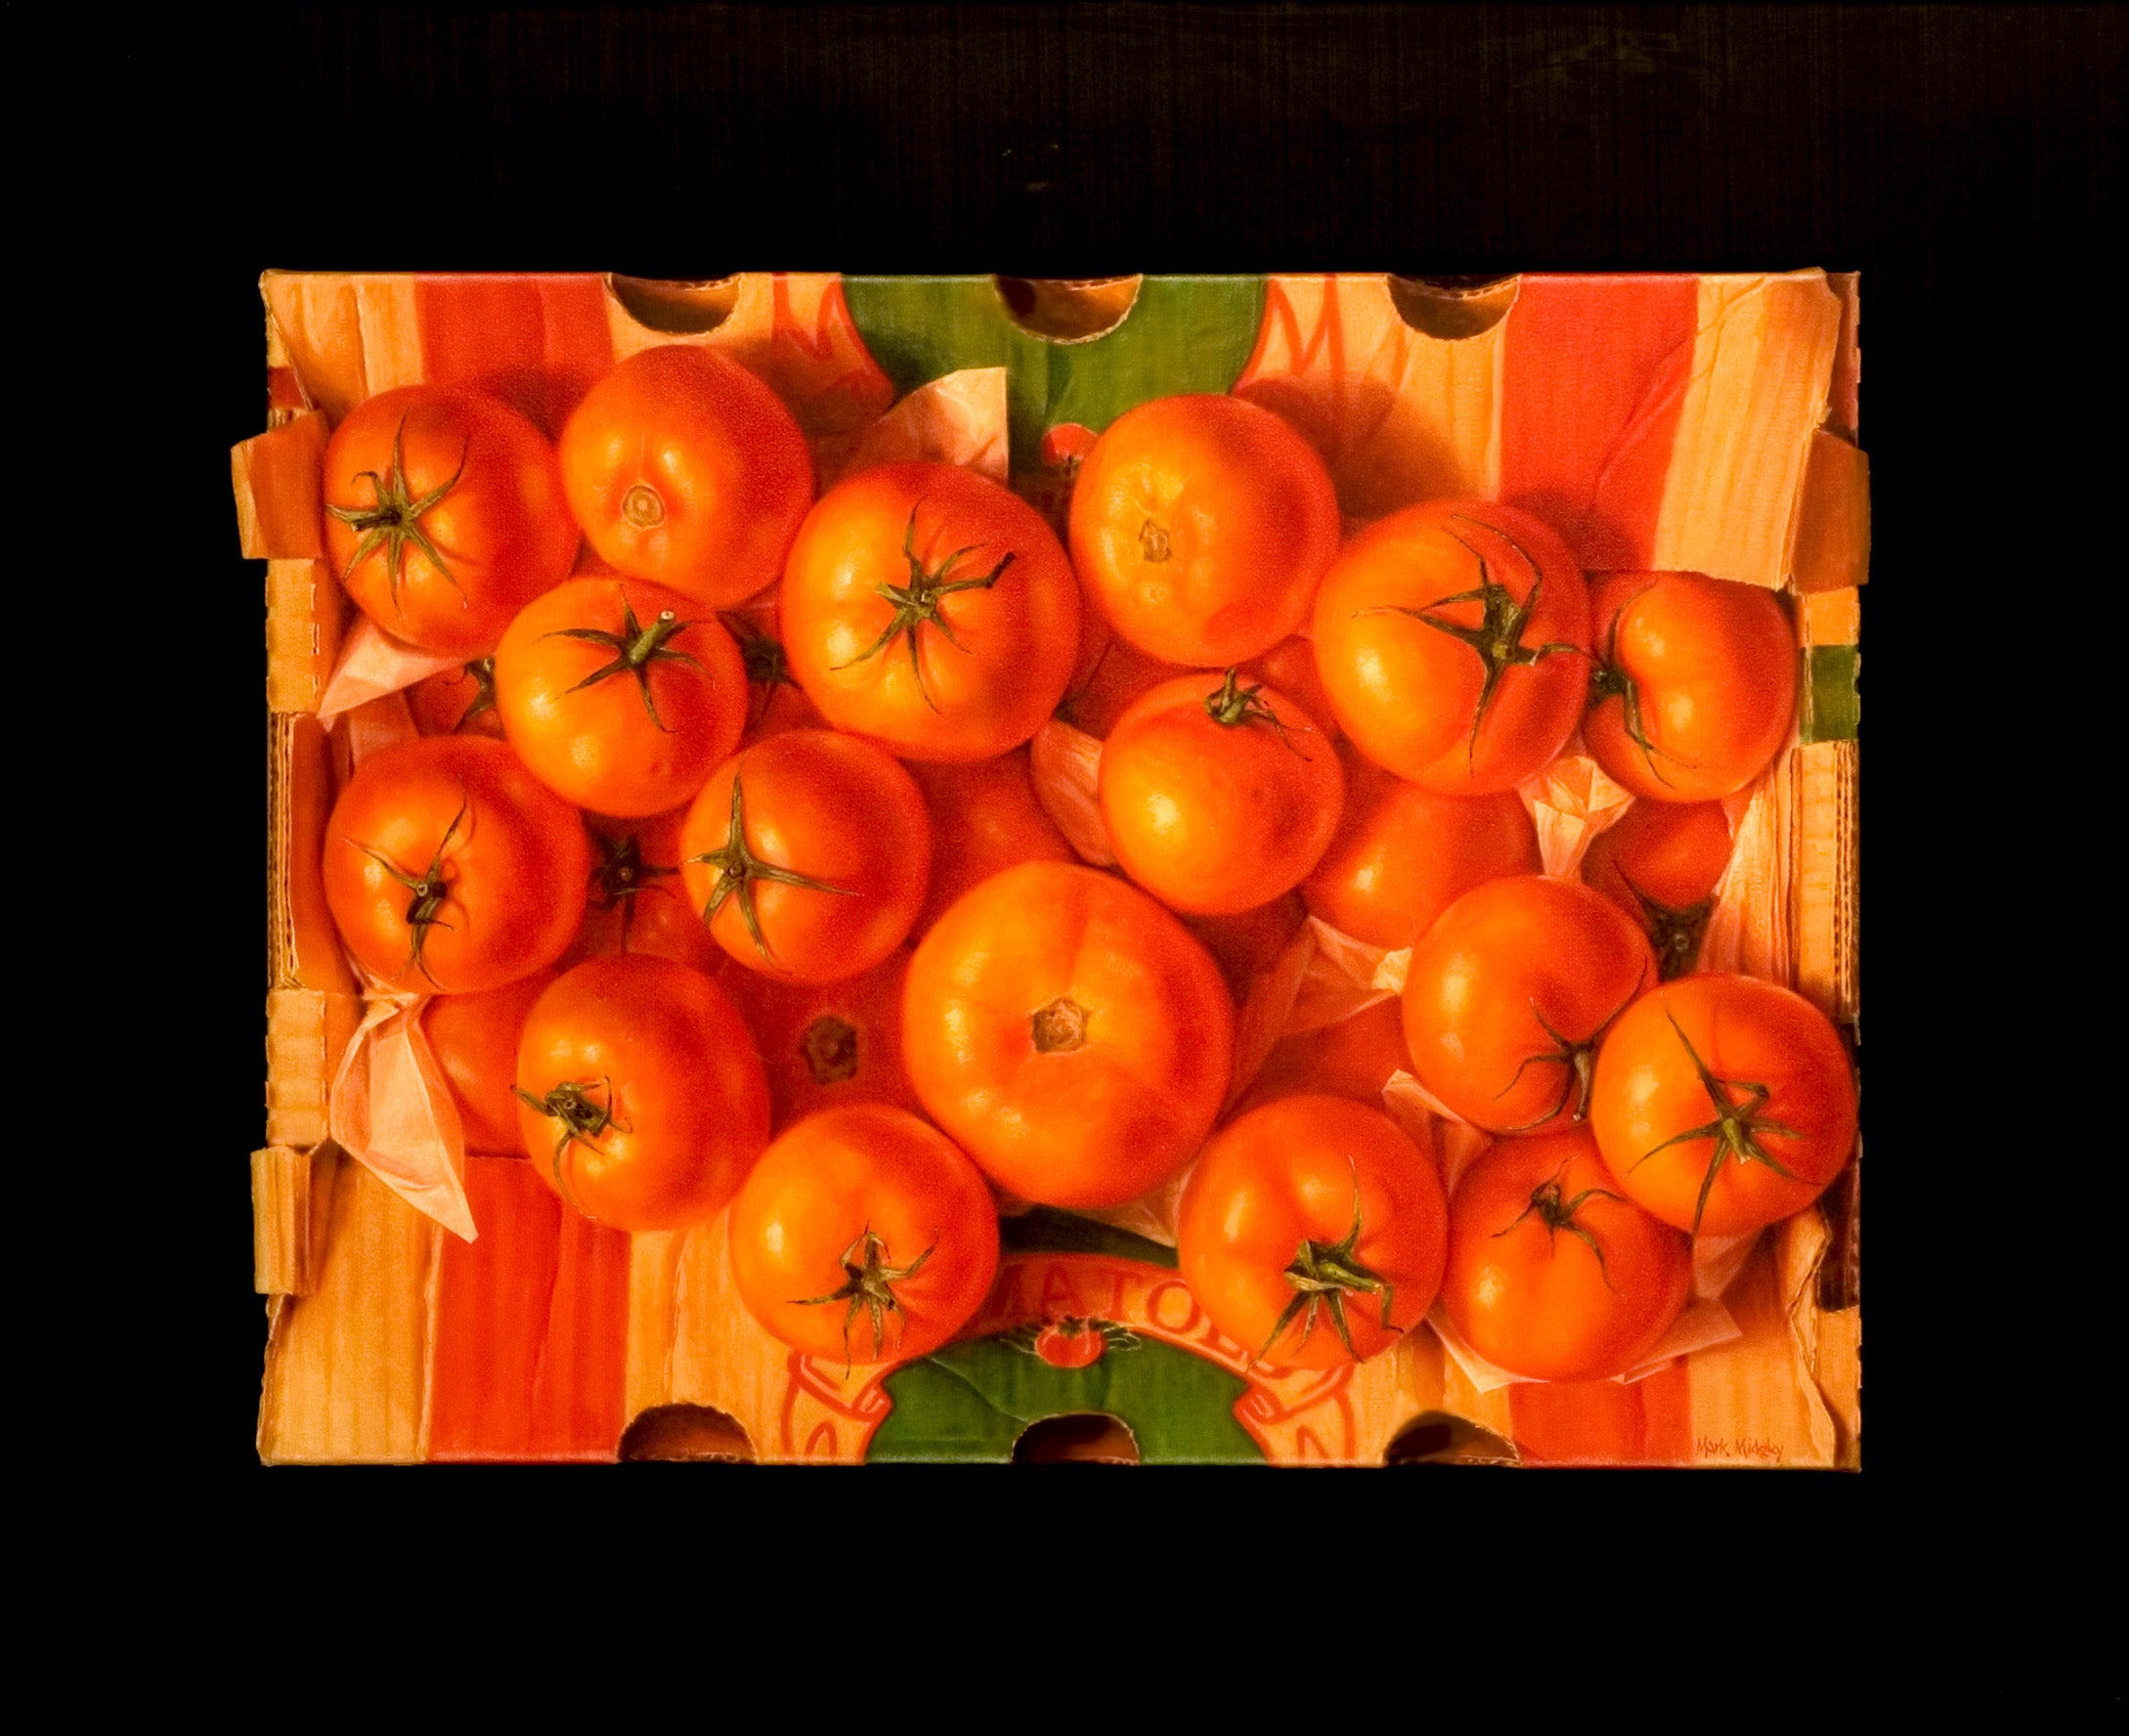 Tomatoes - Still Life, Fruit & Vegetables, South Africa, Realistic